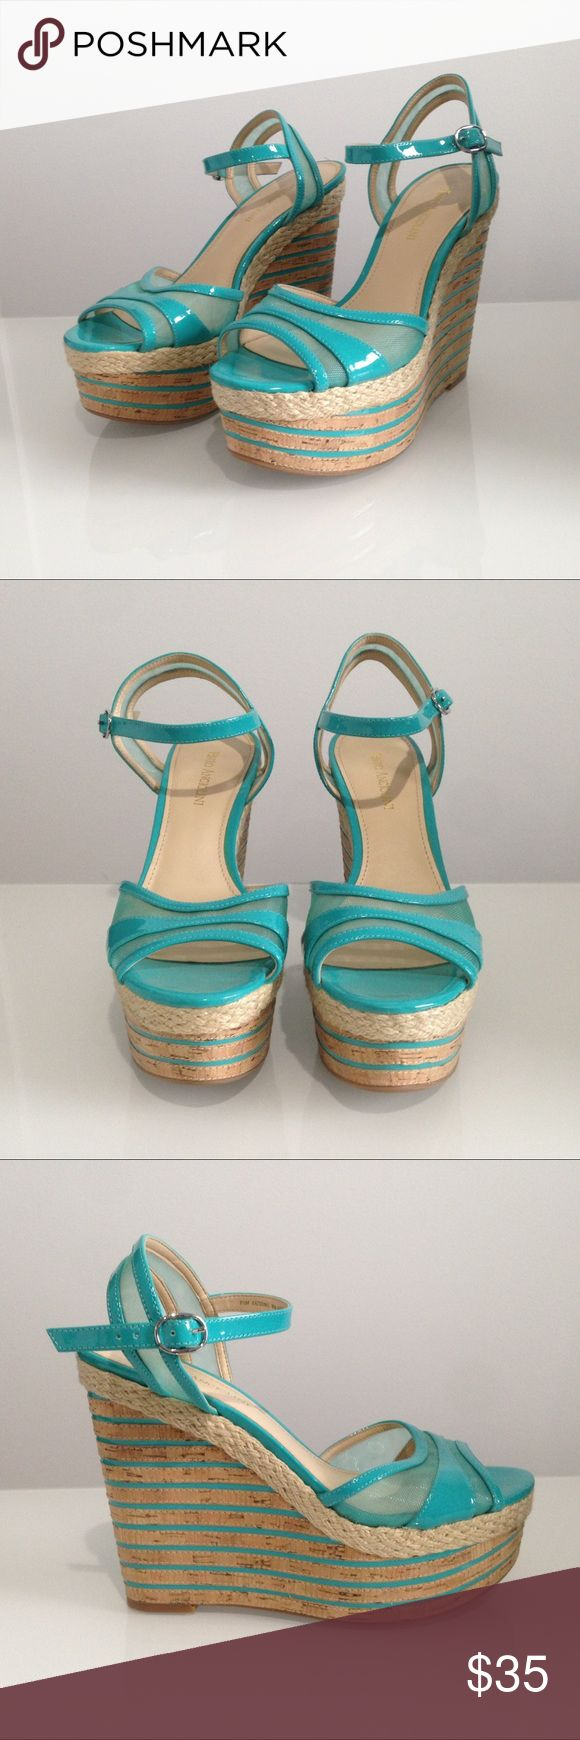 Enzo Angliolini Turquoise Wedges Vibrant turquoise wedges with ankles straps, fun mesh panels, and an open toe. These have never been worn, but there is some peeling on the back right heel. Enzo Angiolini Shoes Wedges